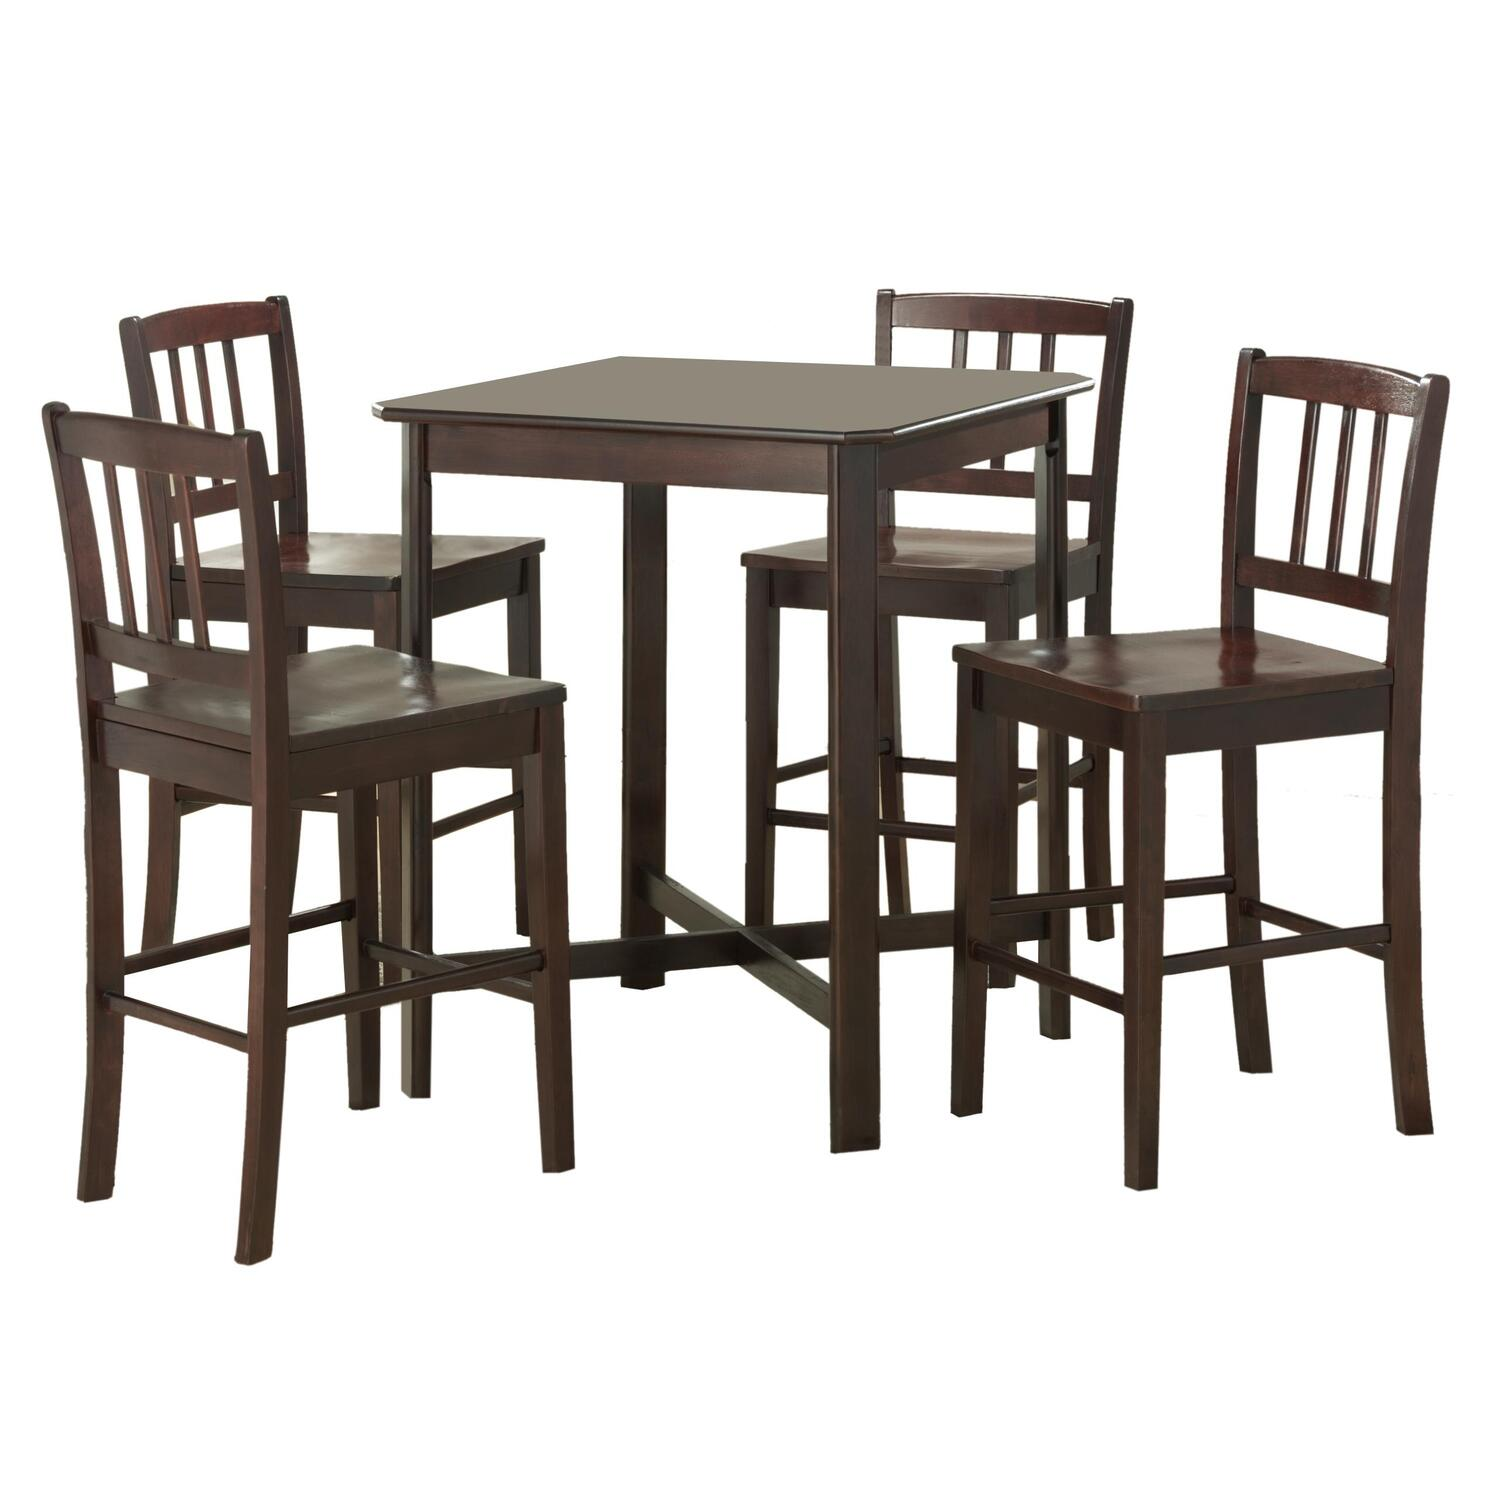 5 piece solid wood pub table set dark wood ojcommerce. Black Bedroom Furniture Sets. Home Design Ideas